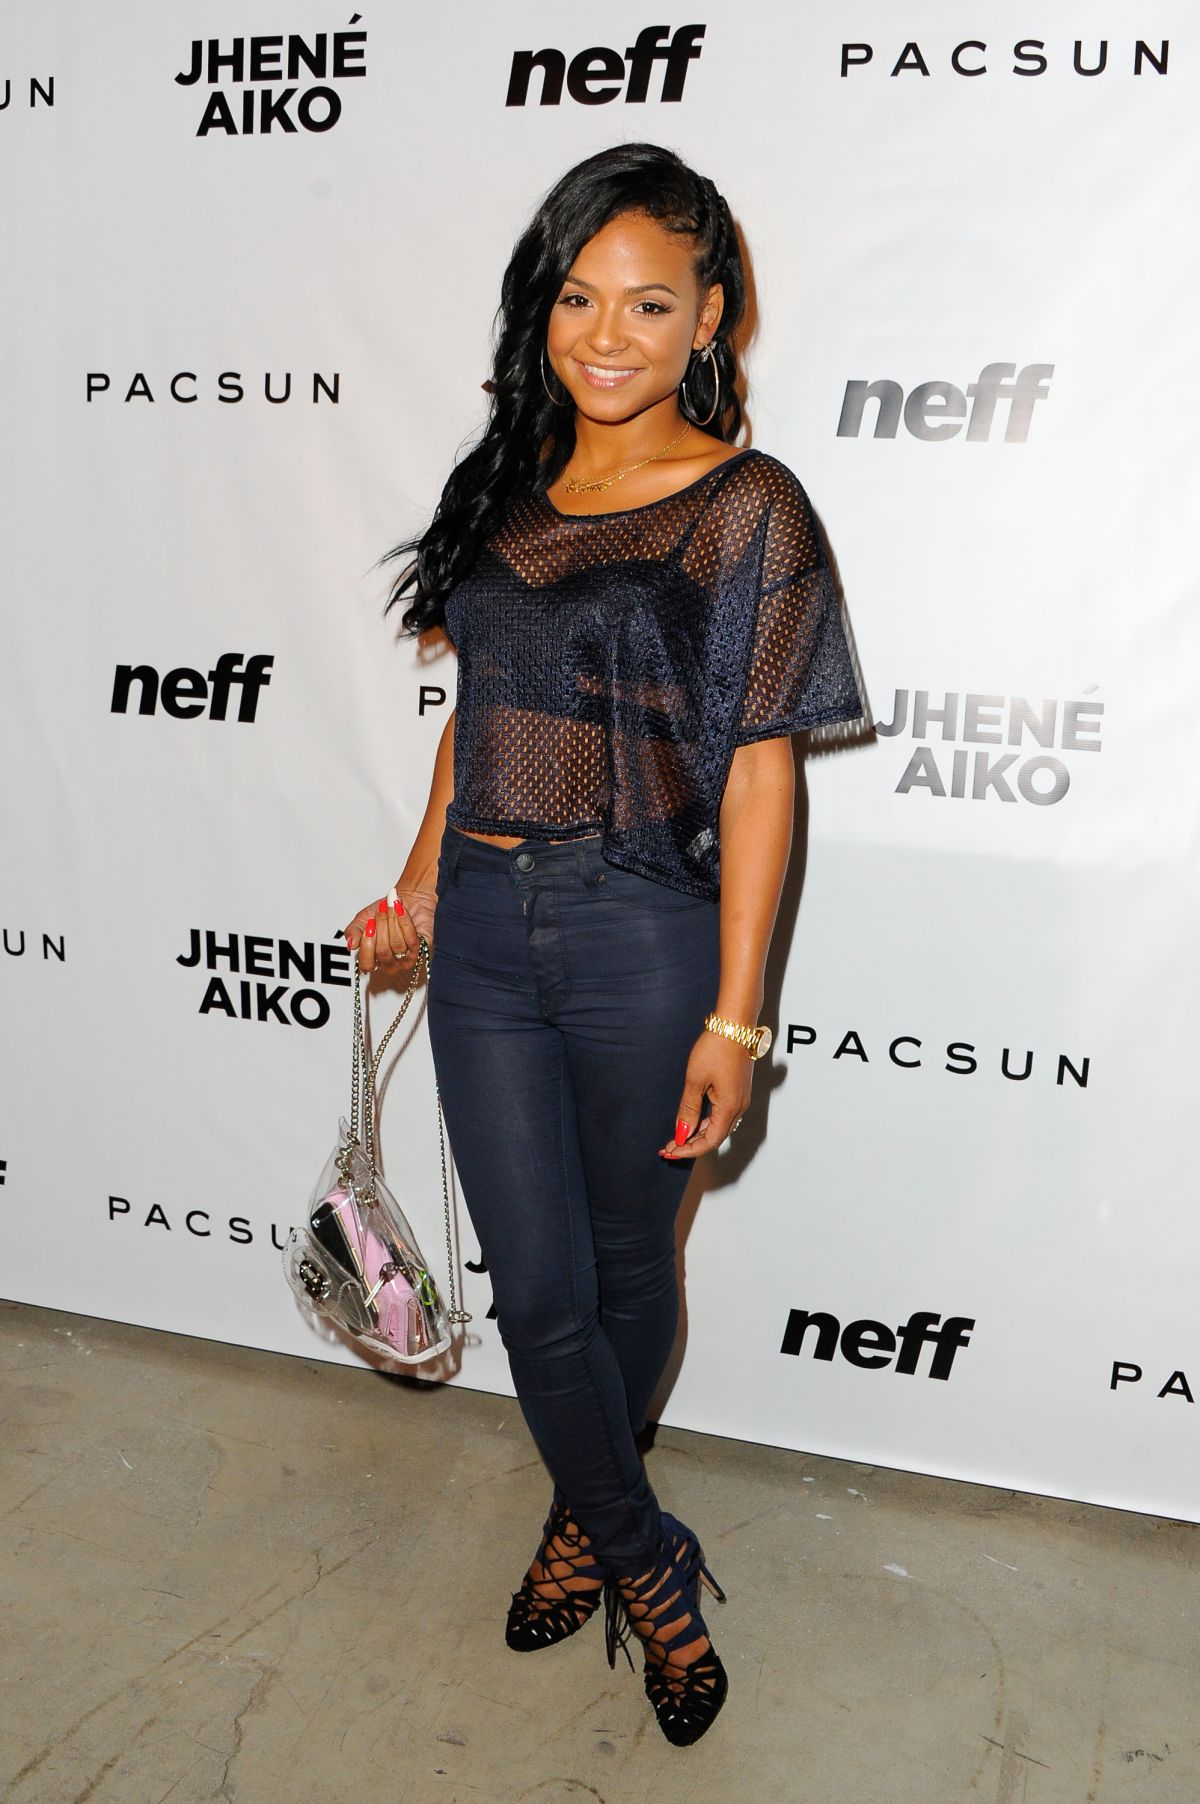 CHRISTINA MILIAN at Jhene Aiko